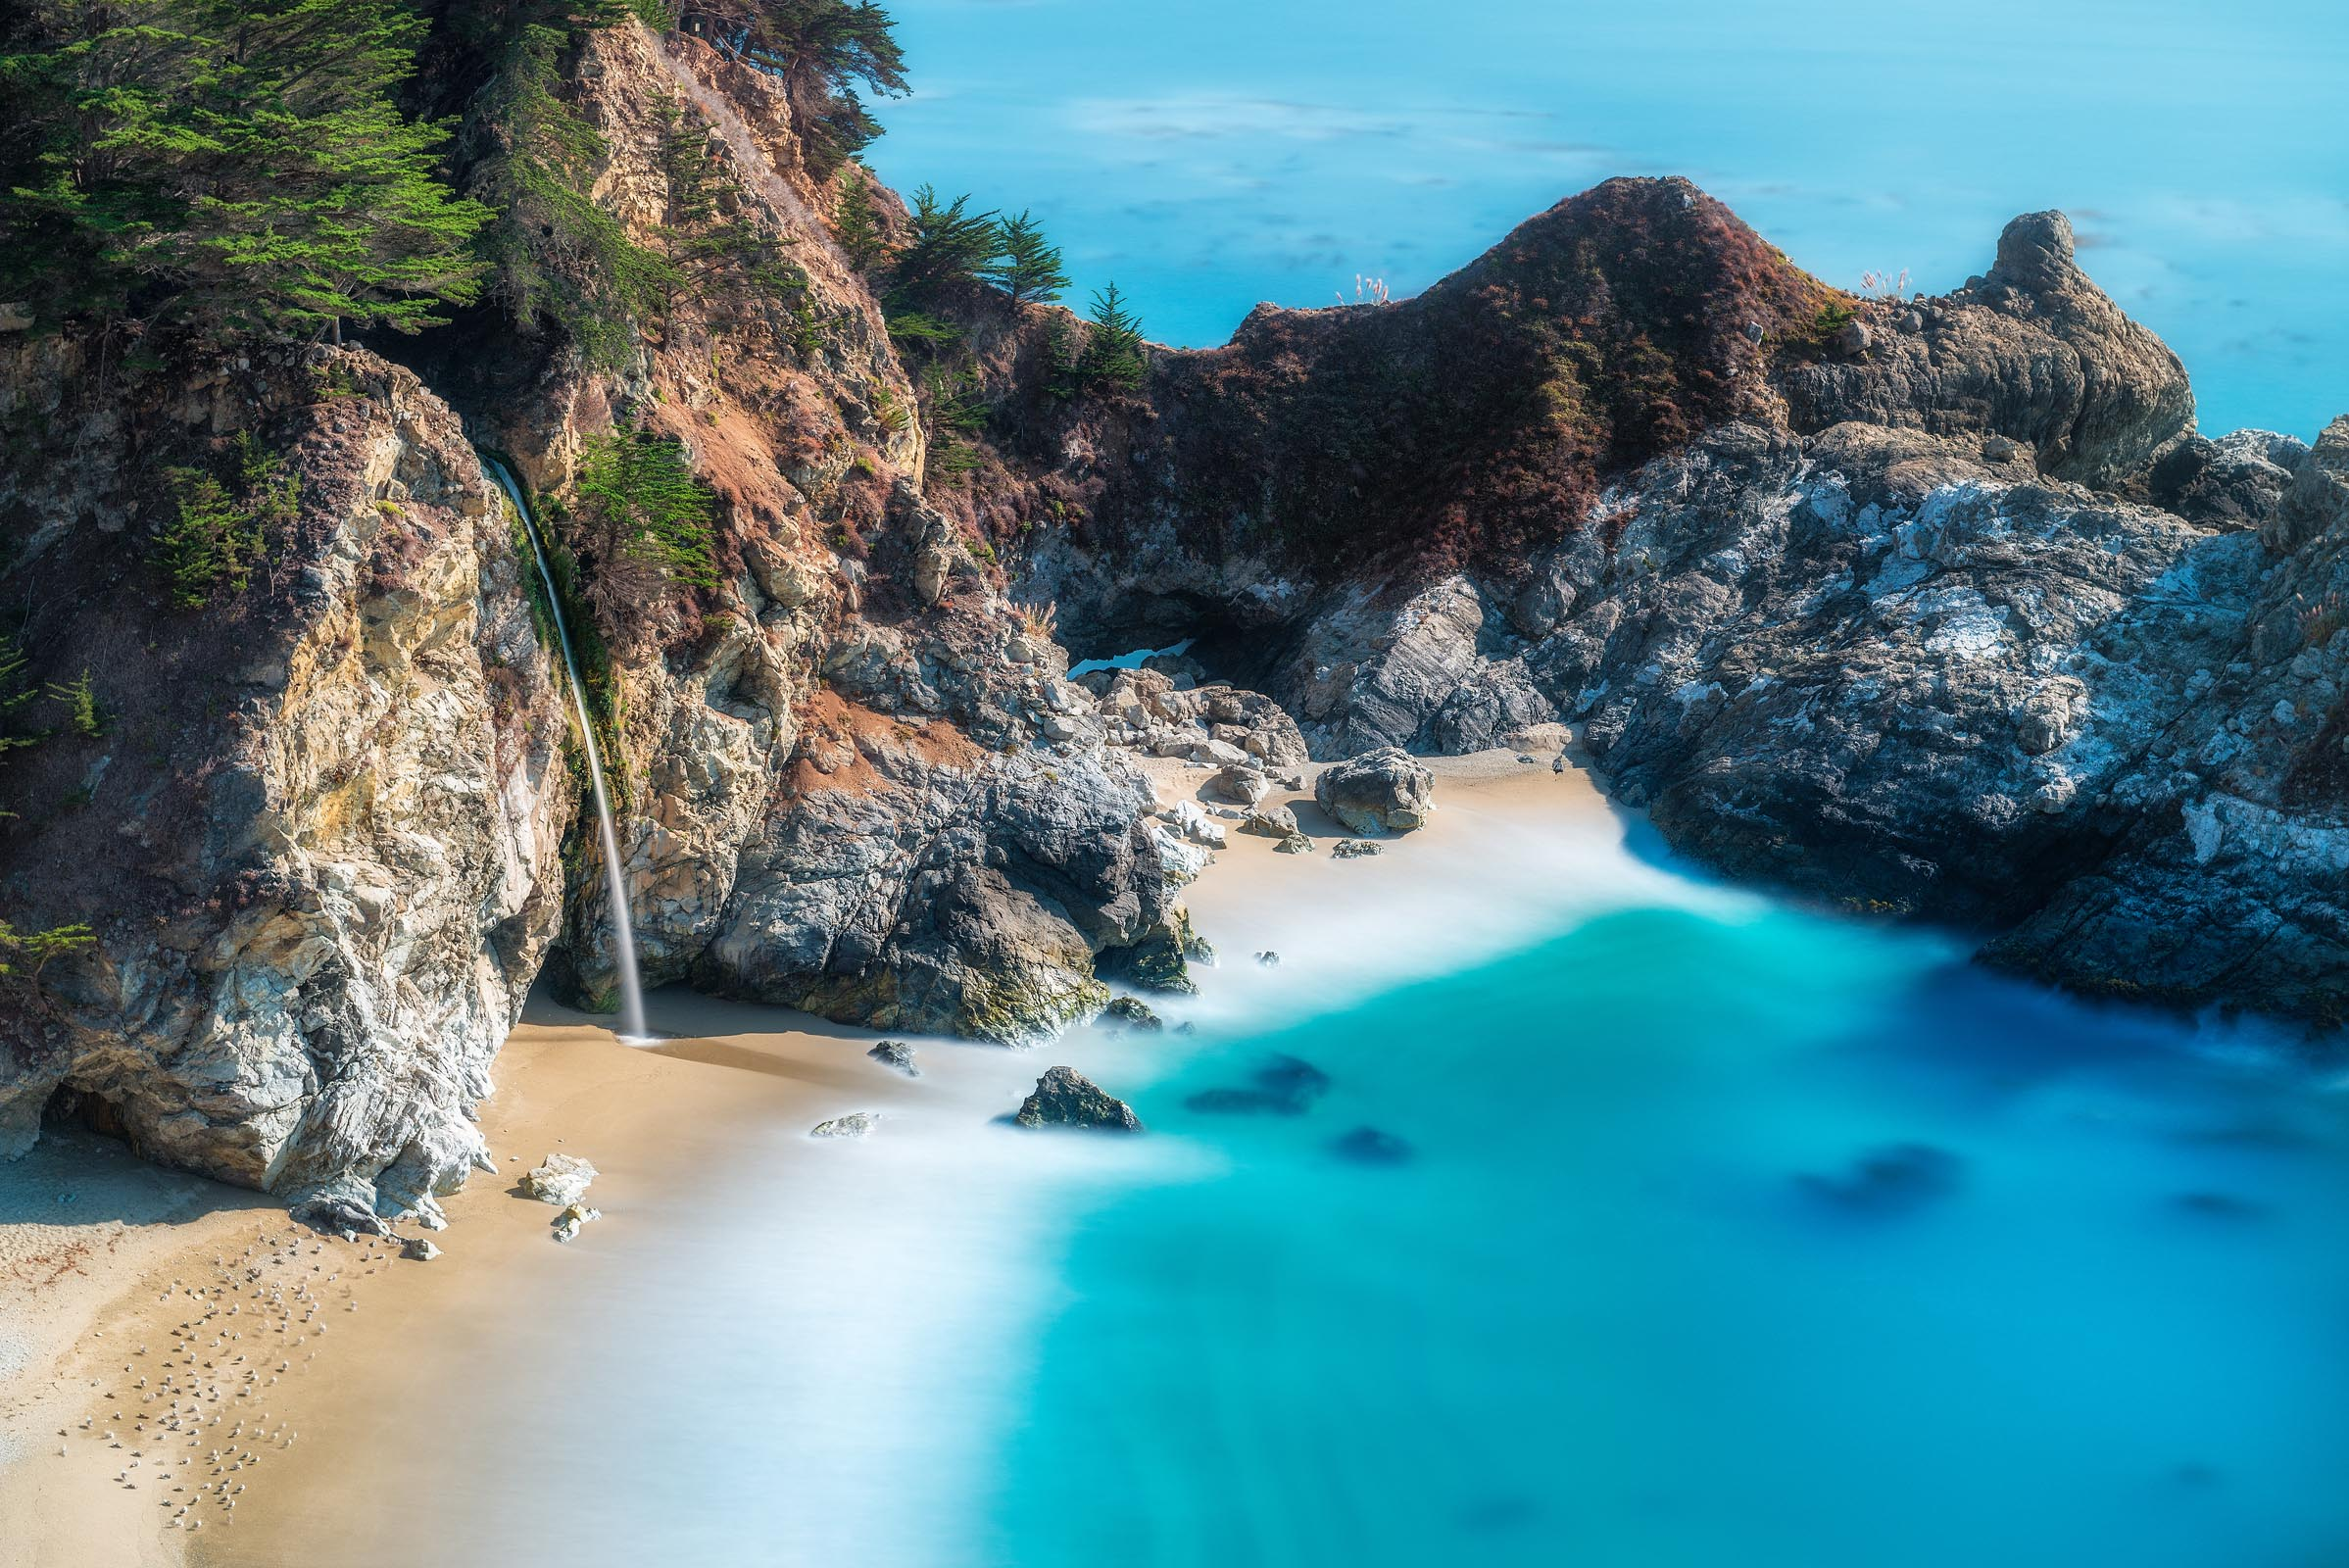 Photograph of McWay Falls in Big Sur, California by Brent Goldman Photography